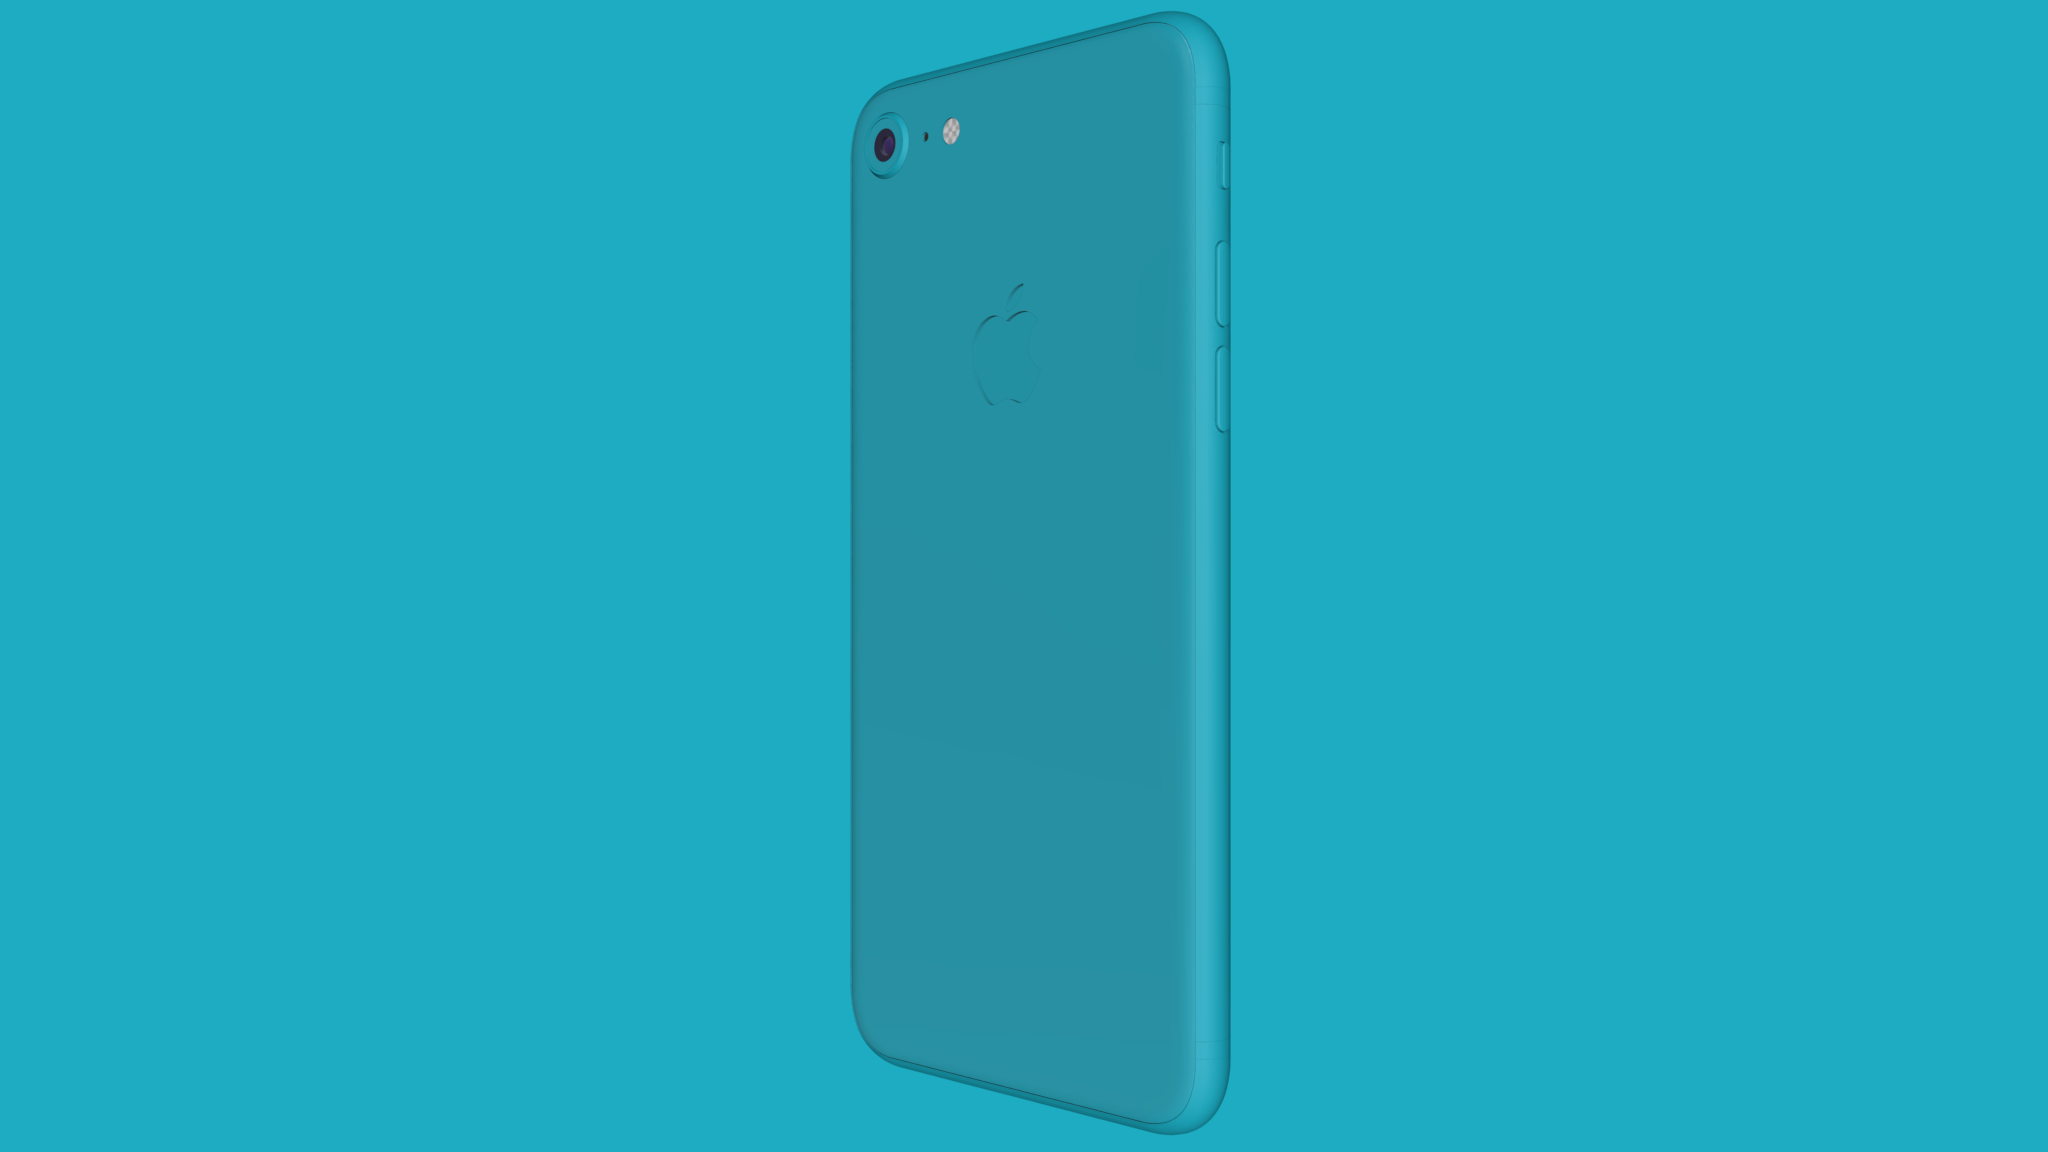 Back of colored iPhone 8 mockup on colored background